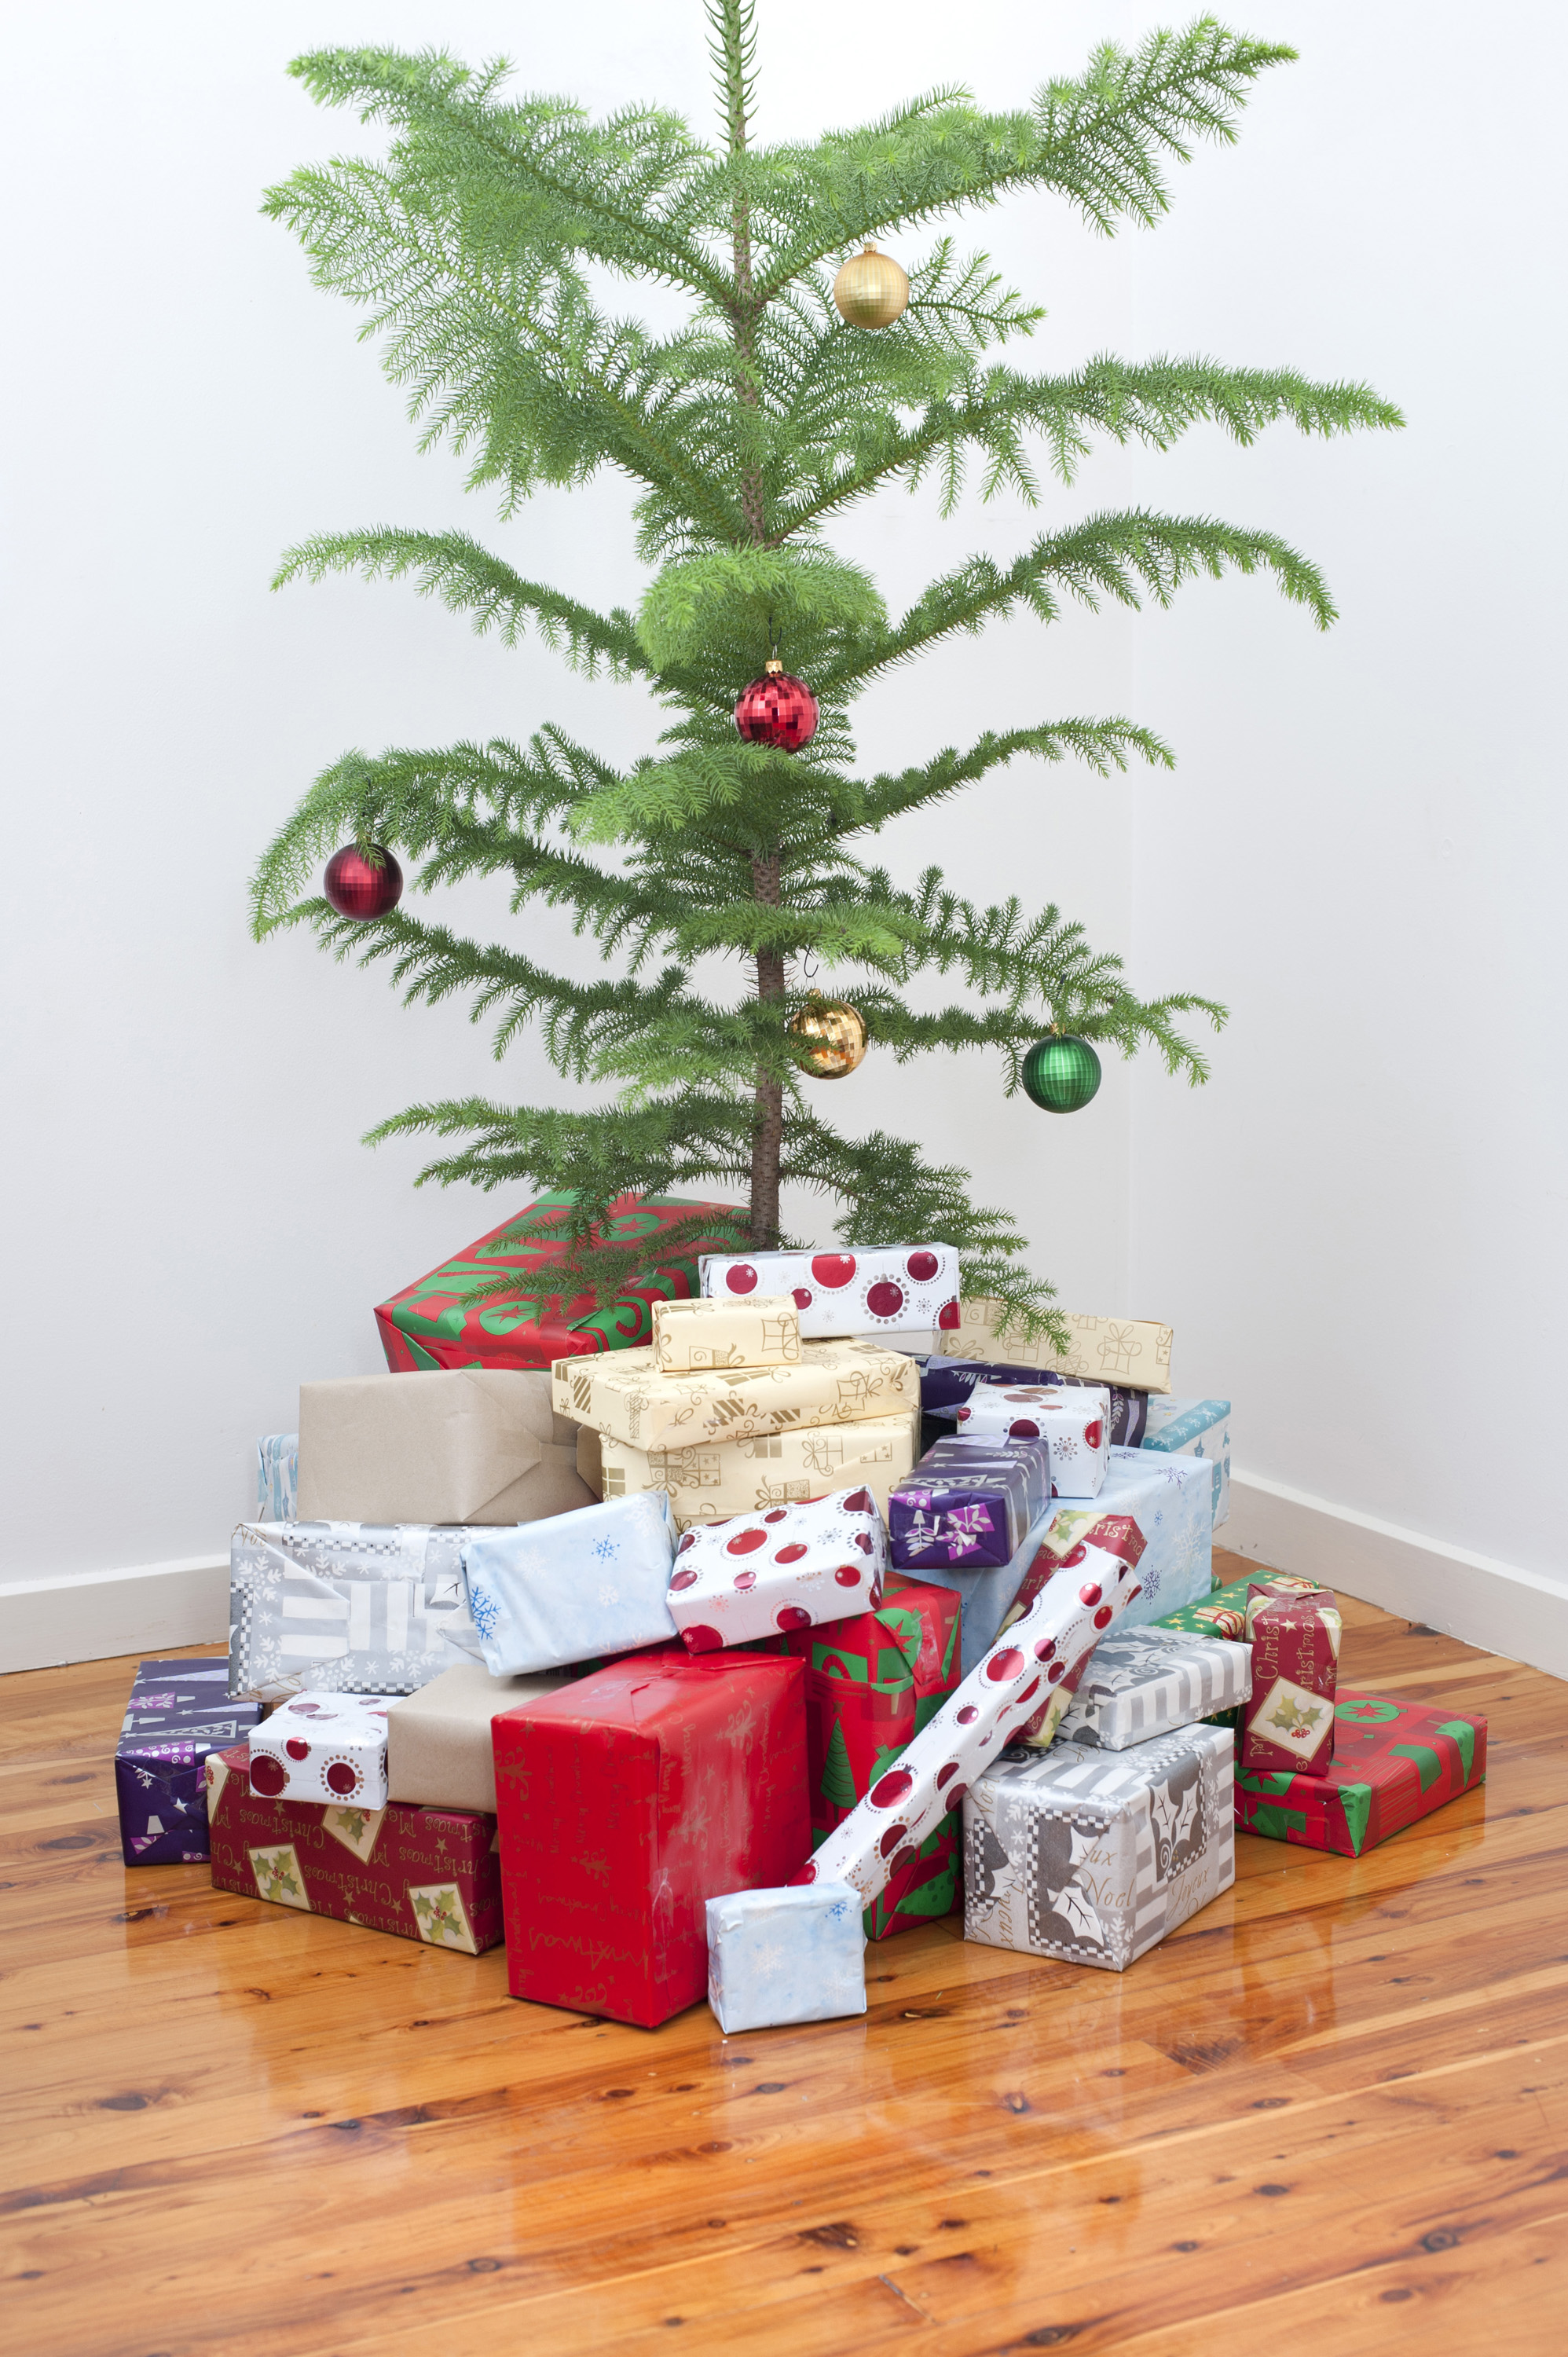 Modern Christmas celebration with a simply decorated natural pine tree and mass of colourful gifts and presents below